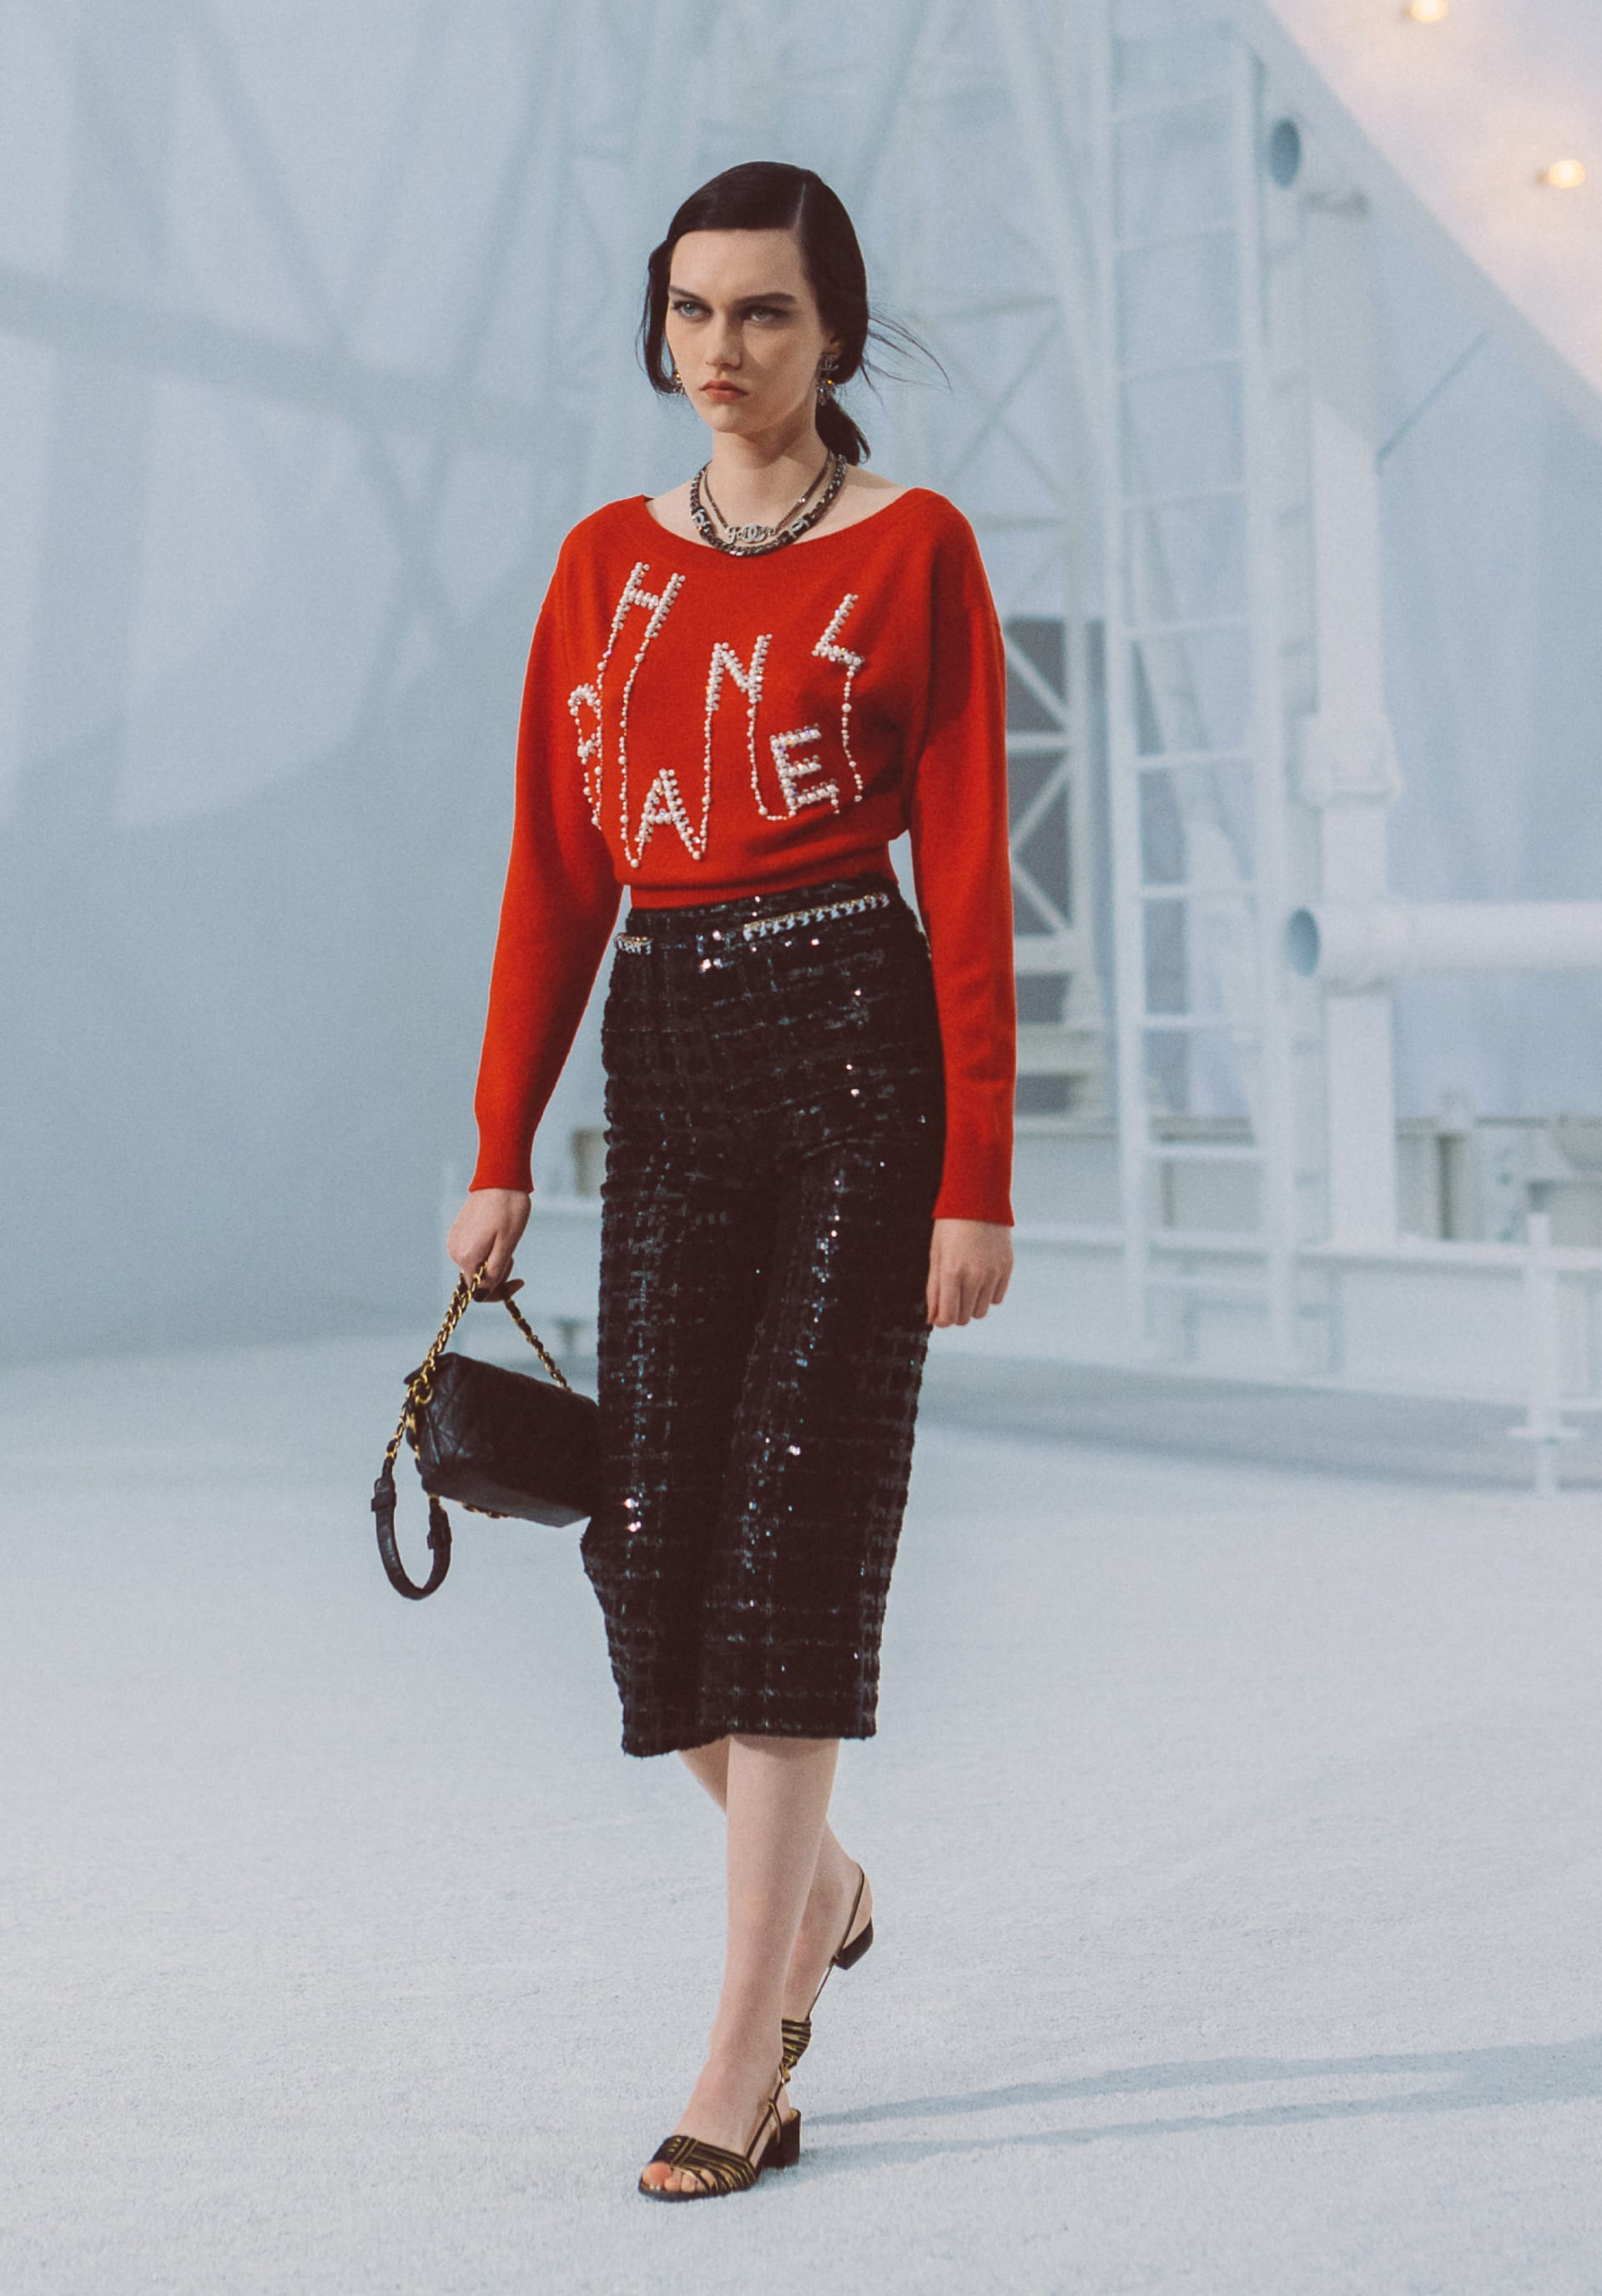 View 1 - Look18 - Spring-Summer 2021 - see full sized version